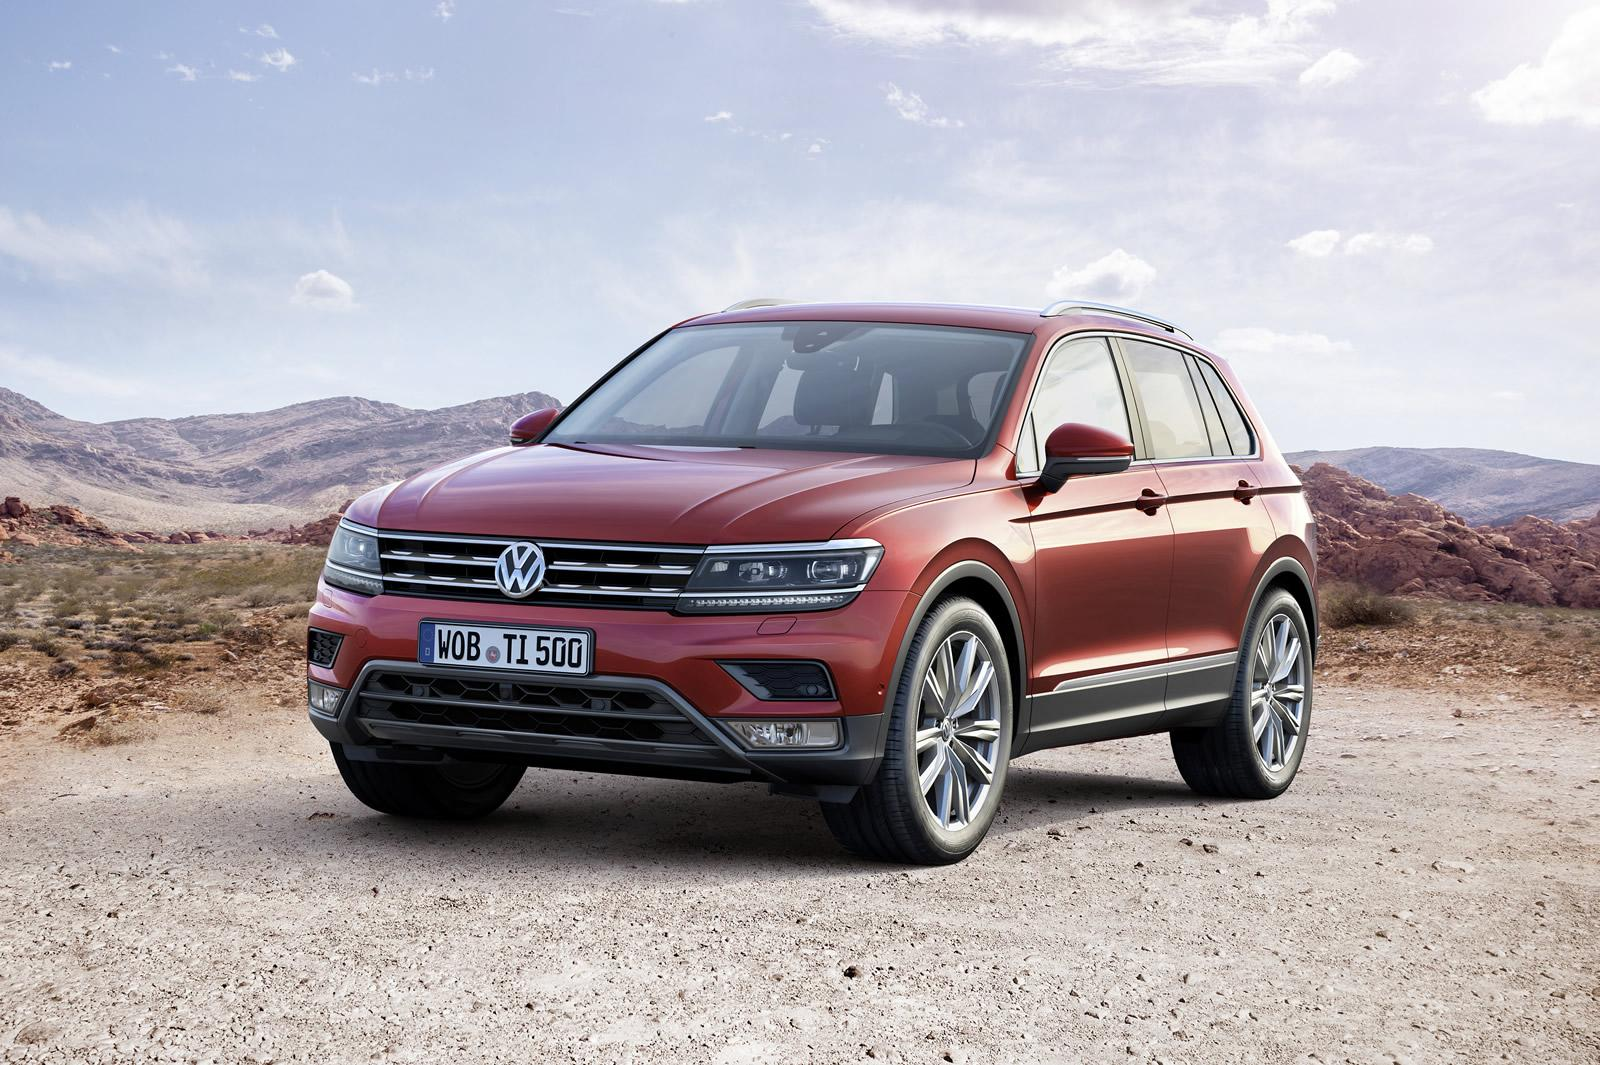 nouveau volkswagen tiguan le sommet des suv. Black Bedroom Furniture Sets. Home Design Ideas